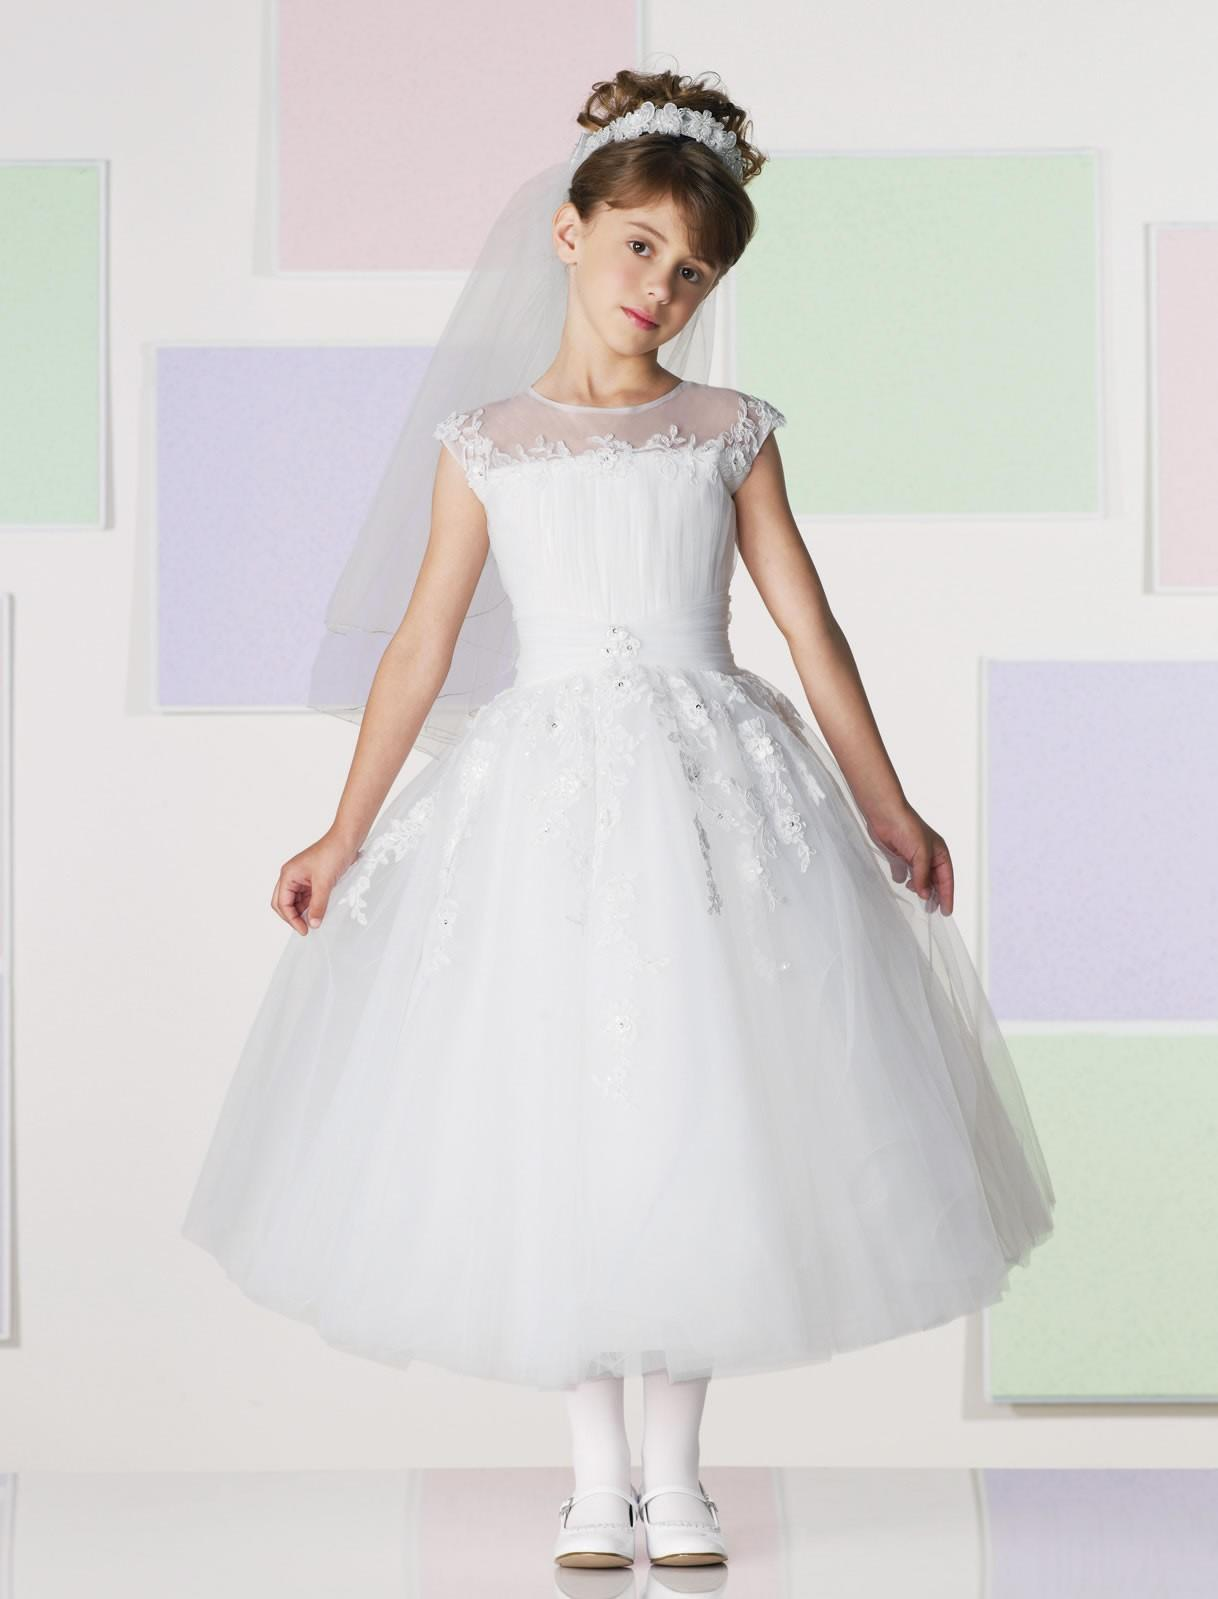 Looking for wedding dresses in Milwaukee? Check in with these top Milwaukee bridal shops to find the latest styles of wedding dresses, bridesmaid dresses, menswear and more. Shopping for wedding dresses and bridesmaid dresses should be a fun experience that you can share with family and friends.